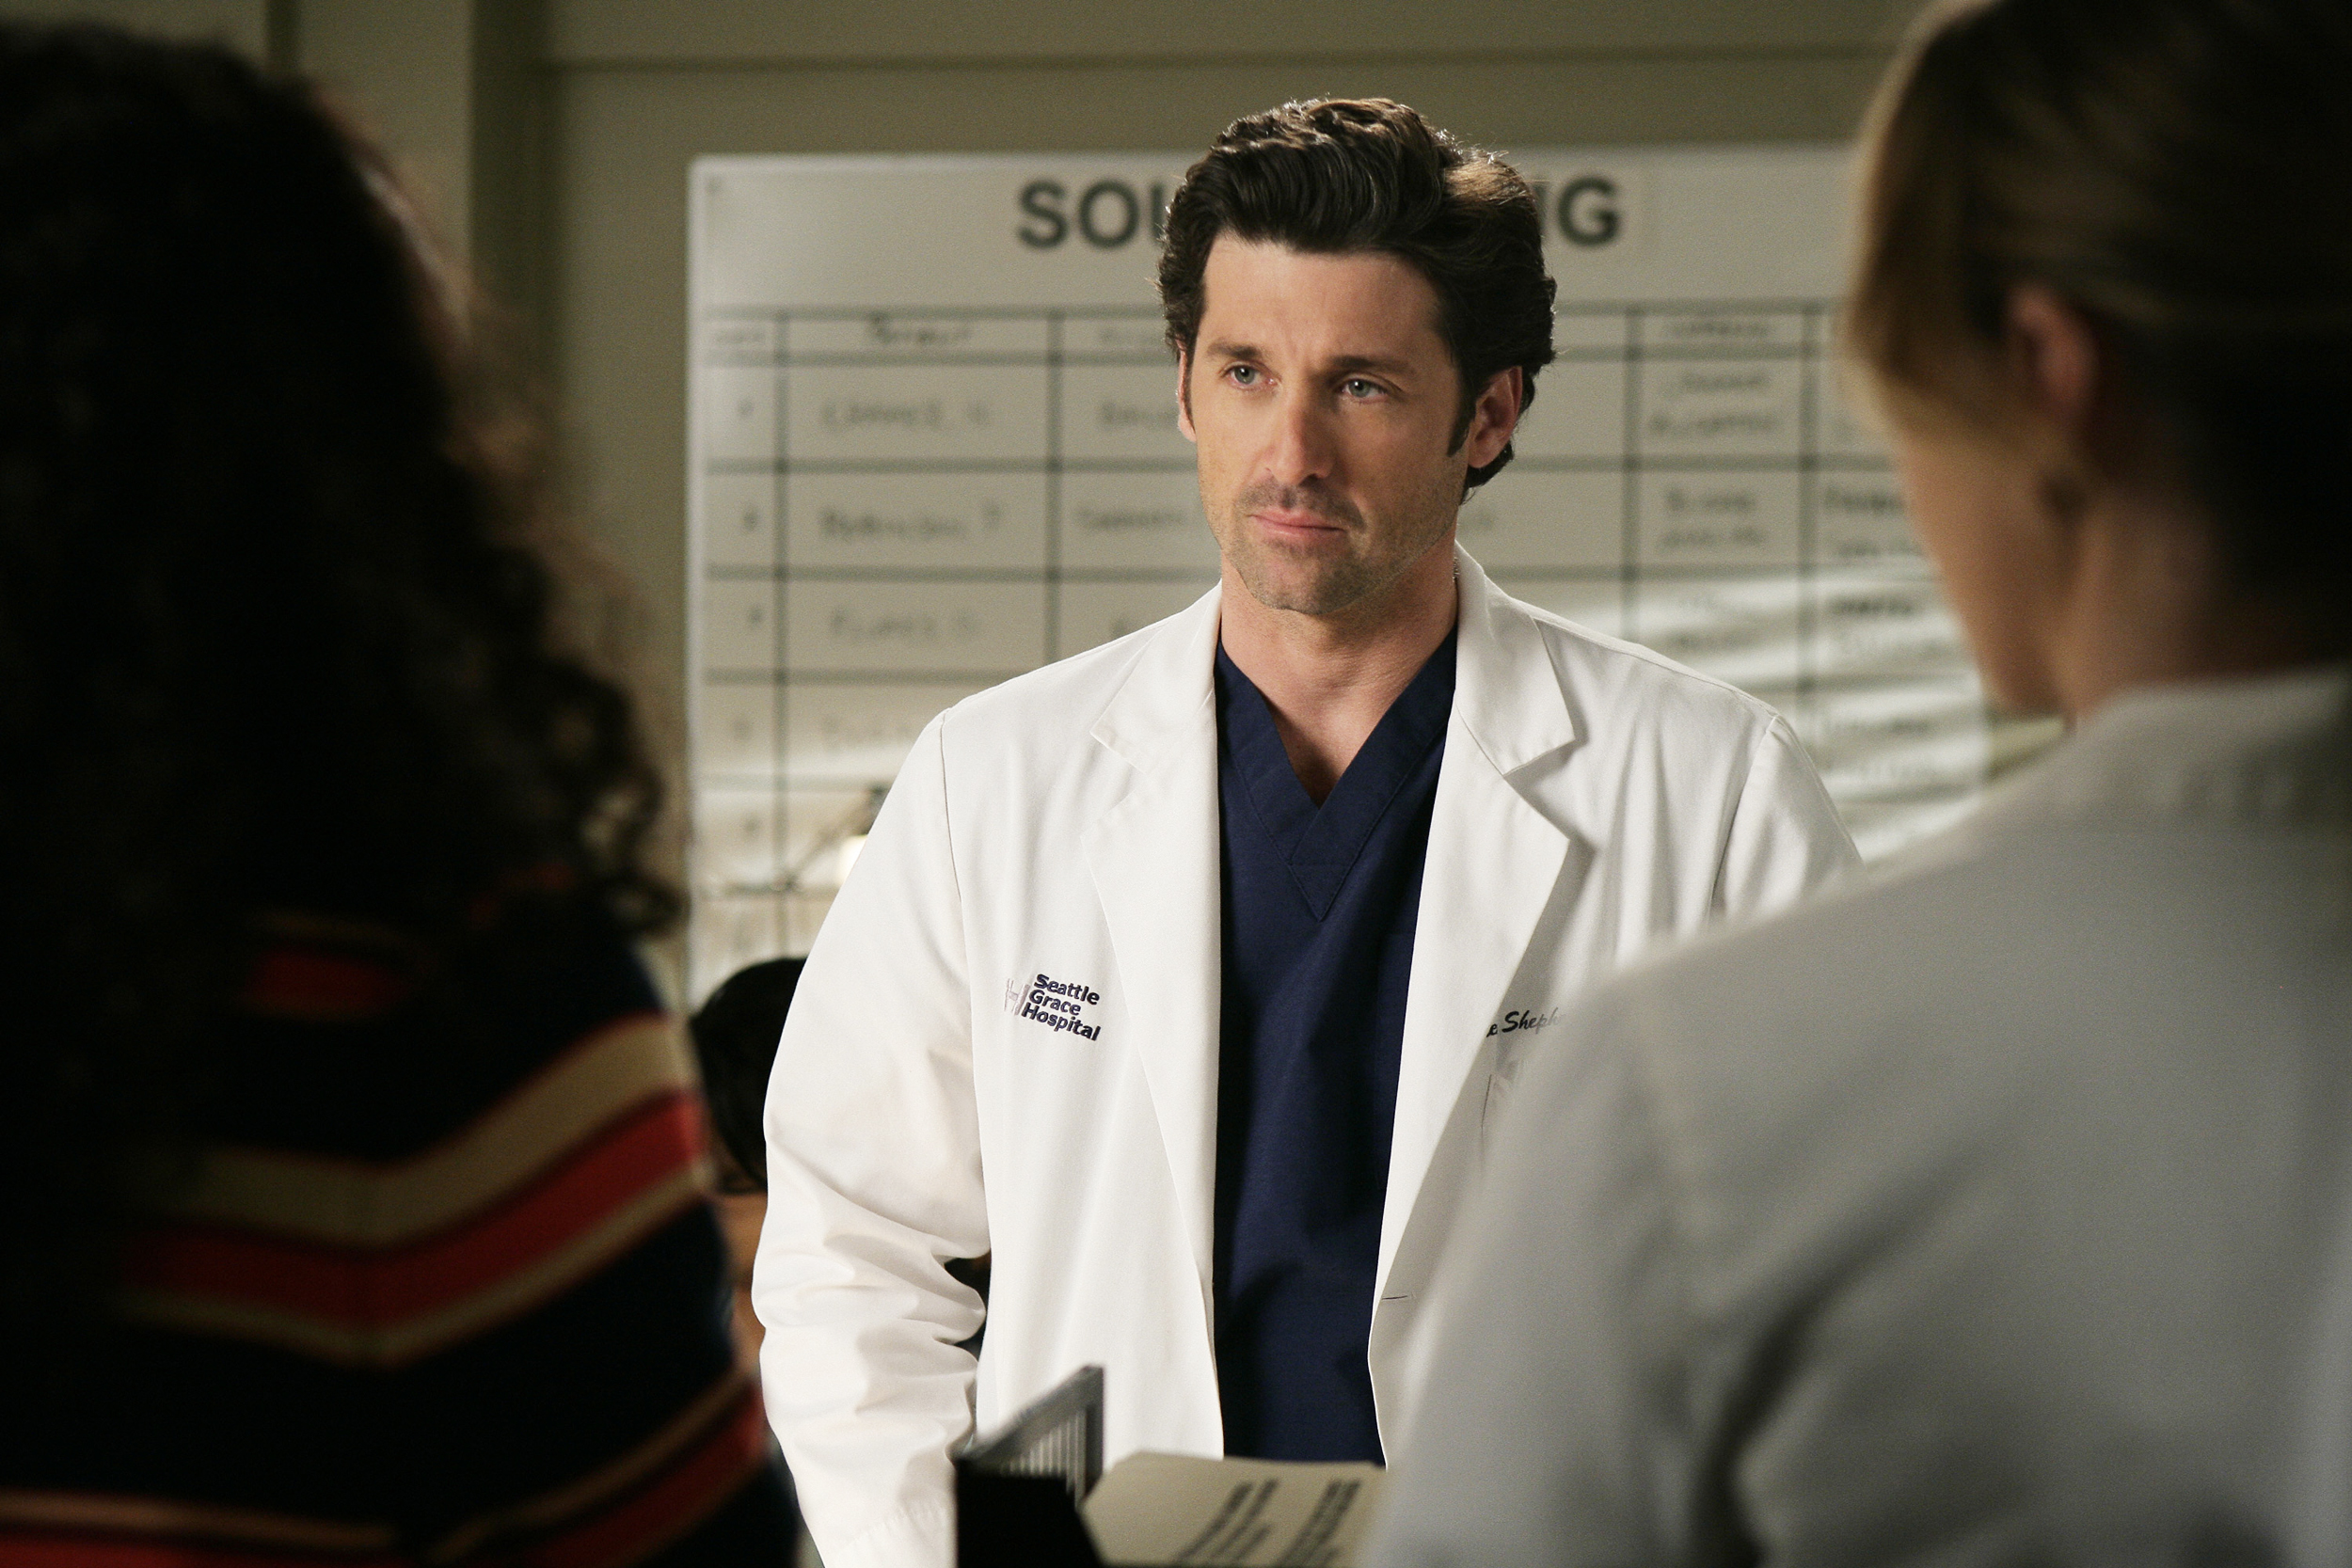 'Diva-like fits': New book details why Patrick Dempsey was killed off 'Grey's Anatomy'